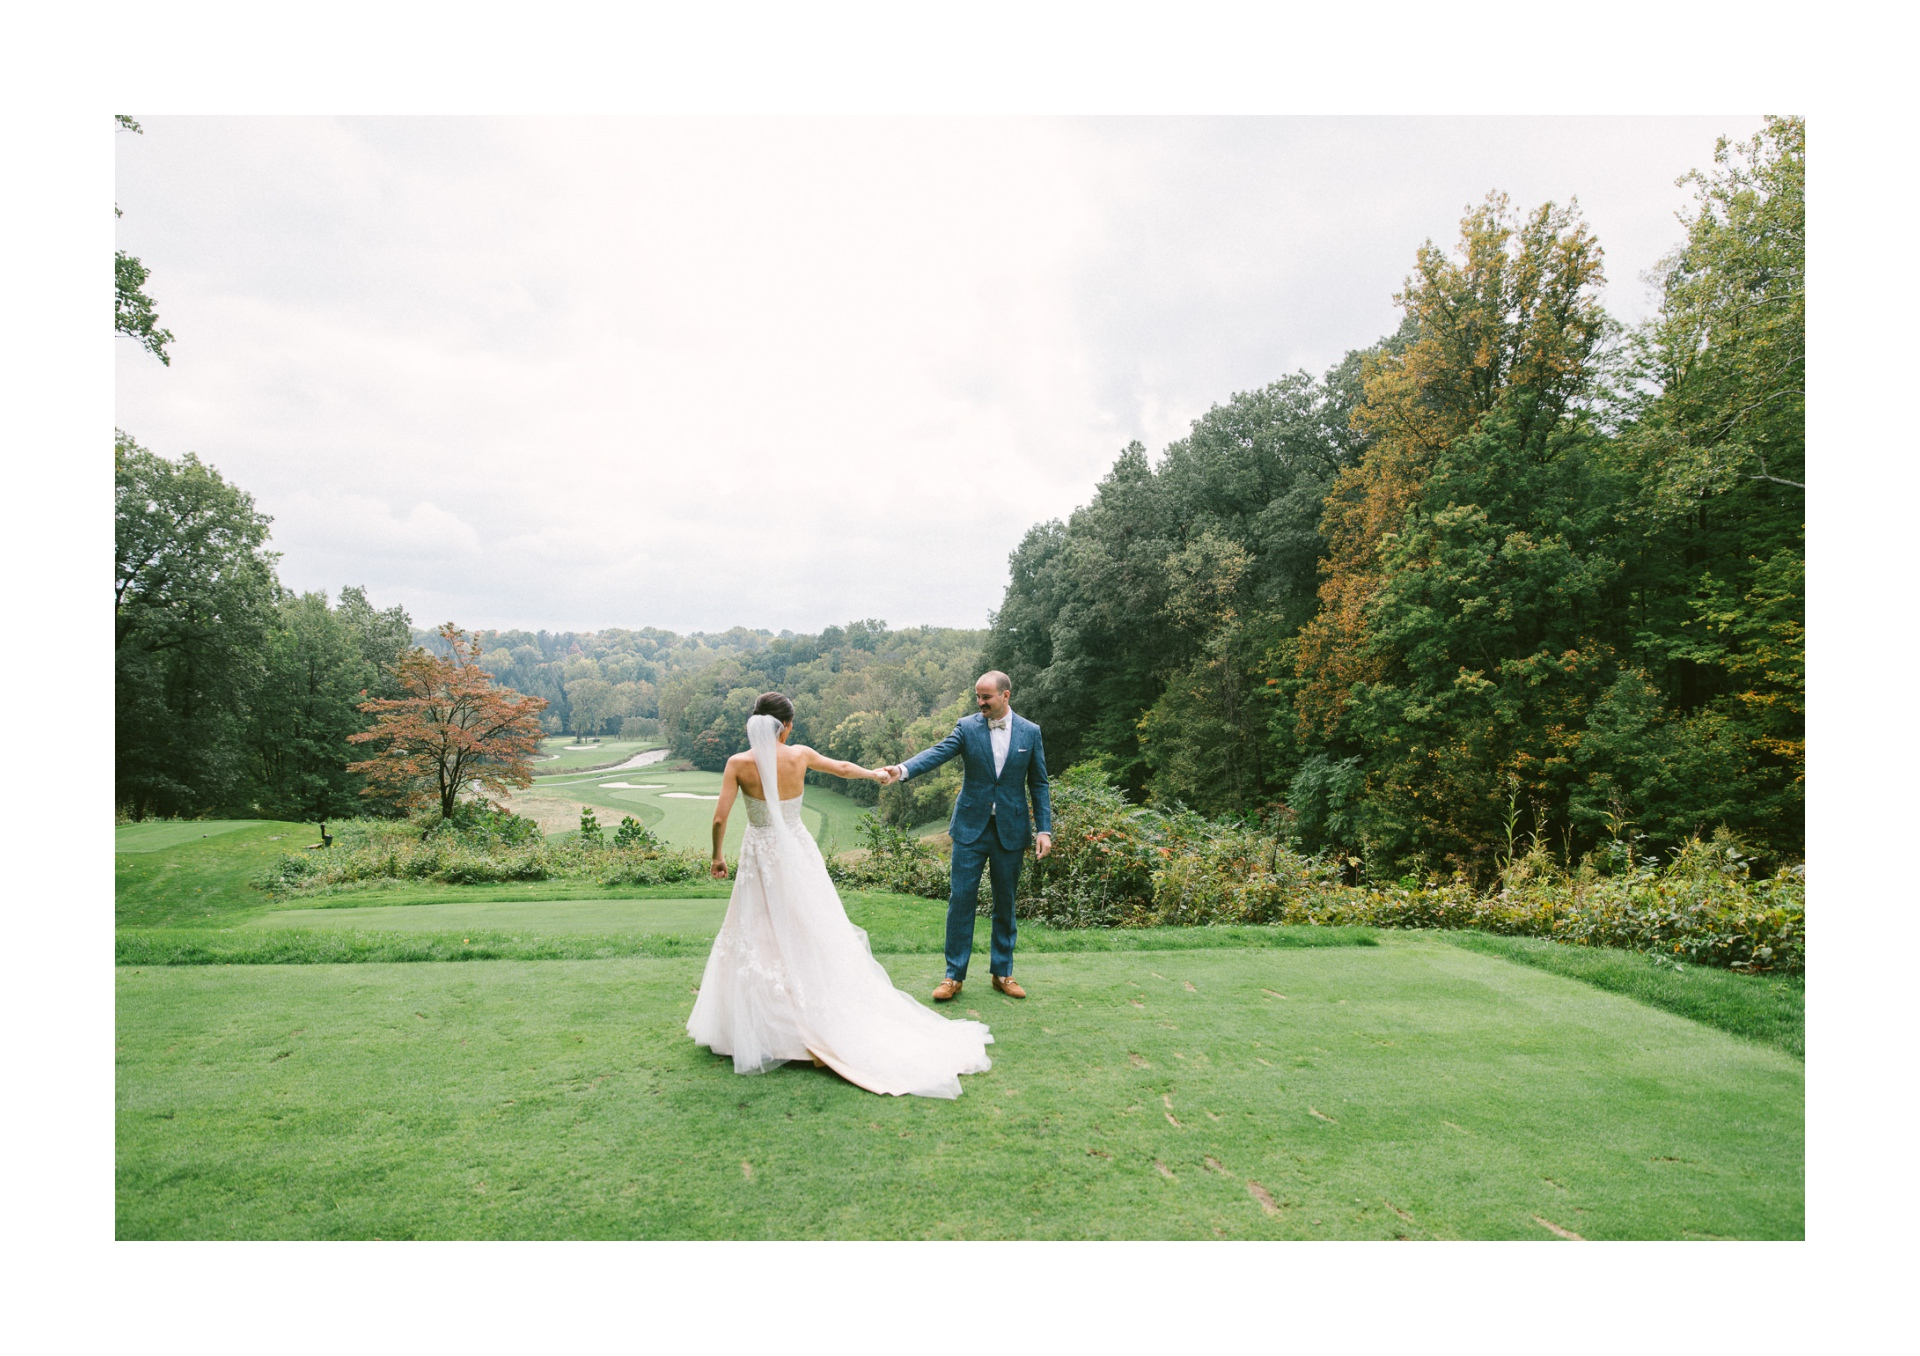 Wedding at Kirtland Country Club in Willoughby 2 9.jpg